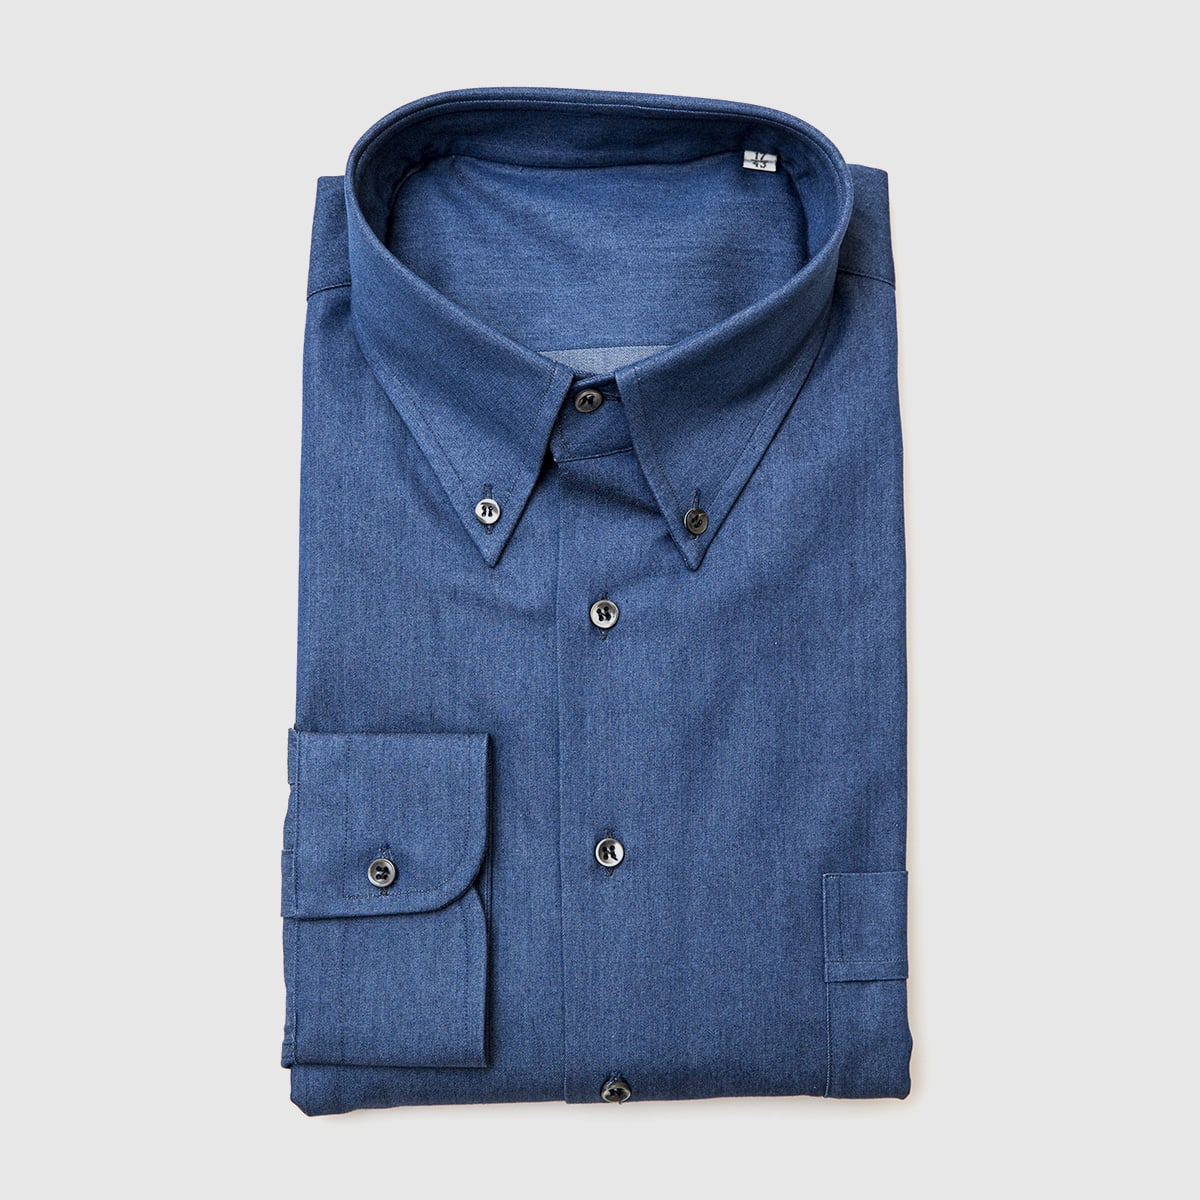 Double-twisted cotton denim shirt